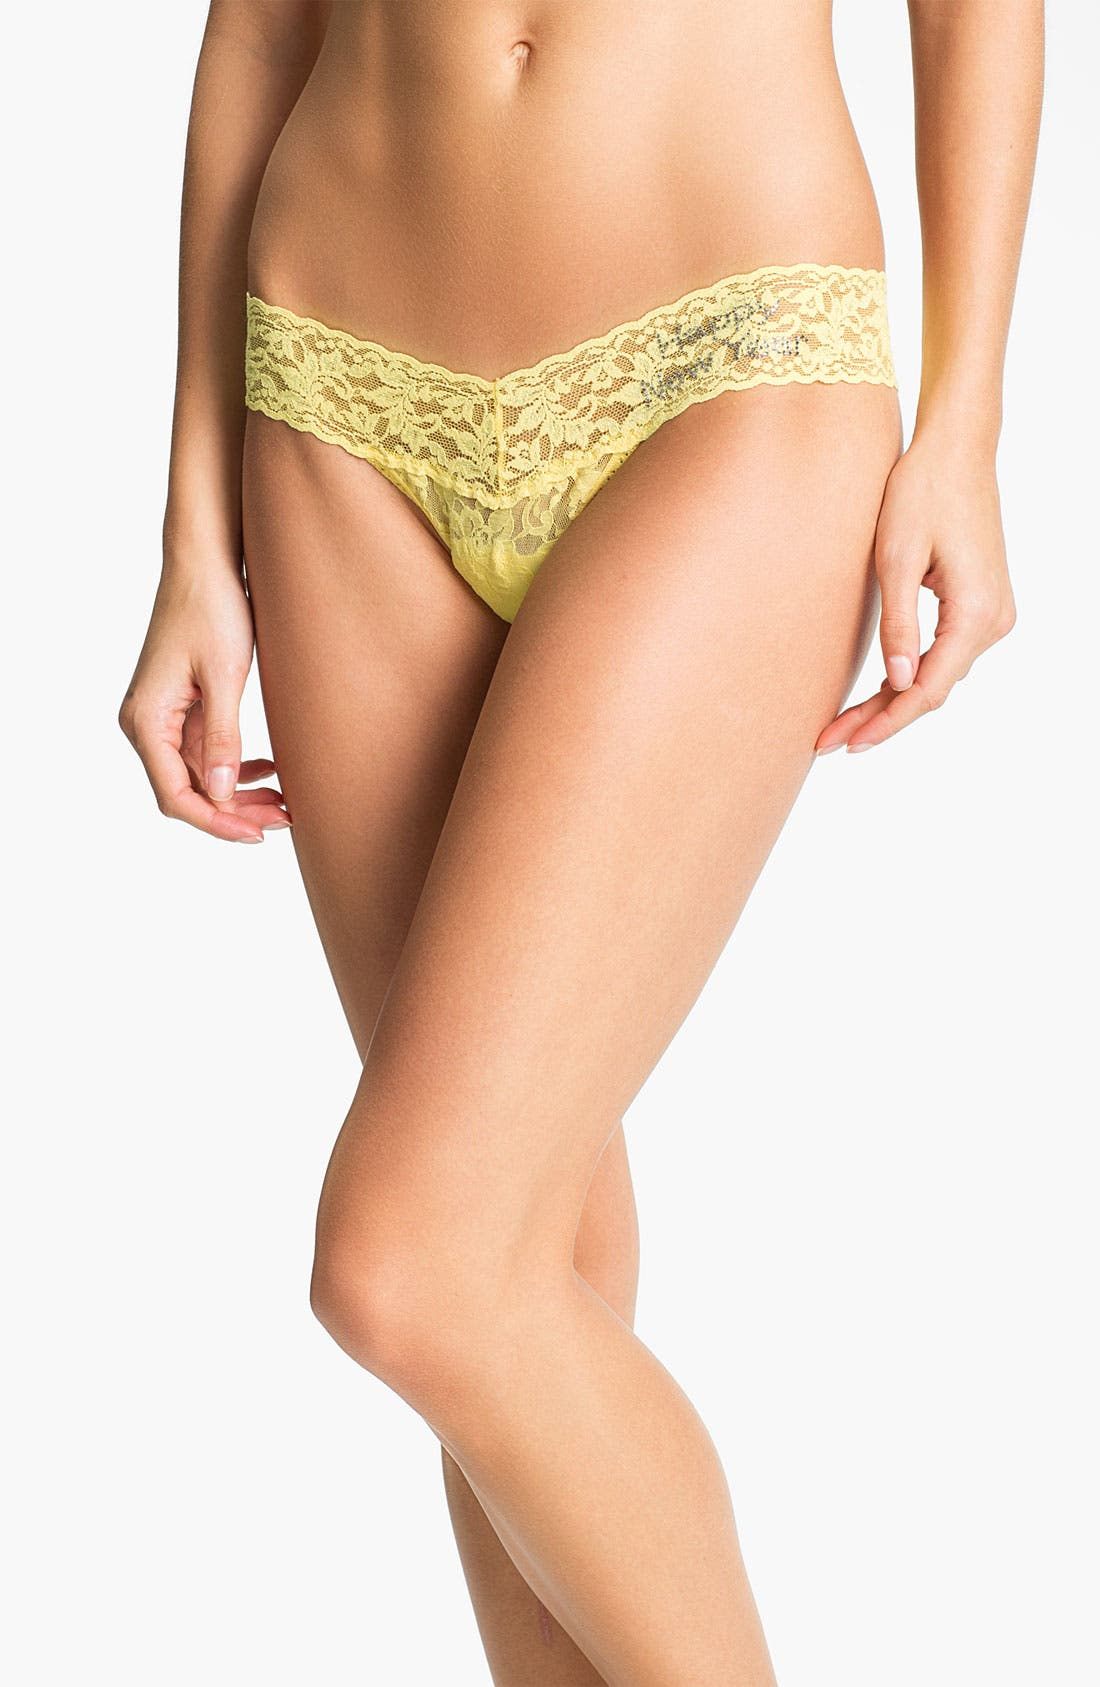 Alternate Image 1 Selected - Hanky Panky 'Happy New Year' Embellished Low Rise Thong